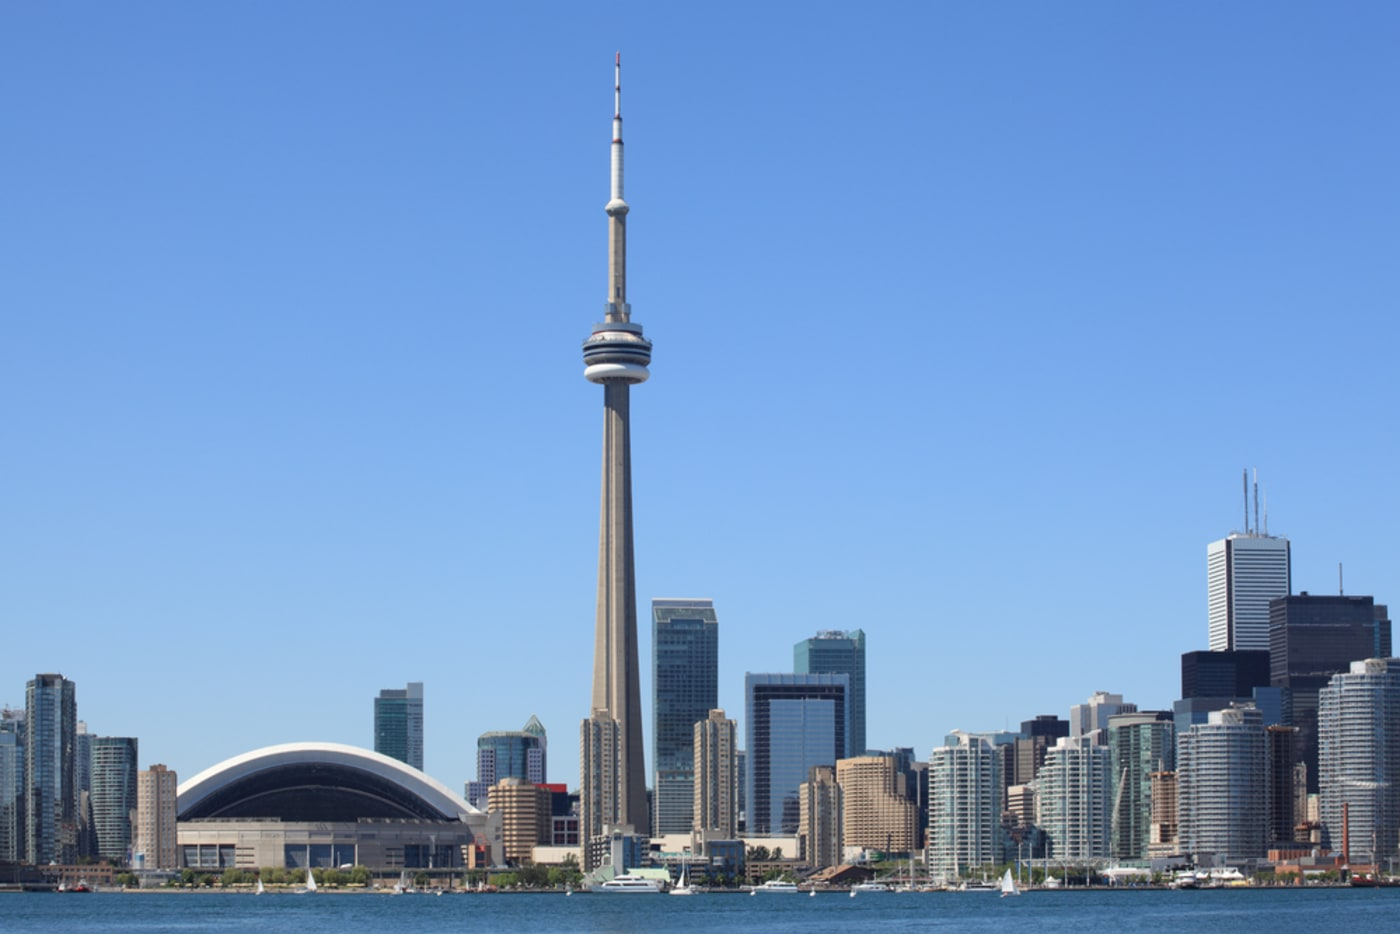 According to a study by The Economist, Toronto is the world's best city to live in